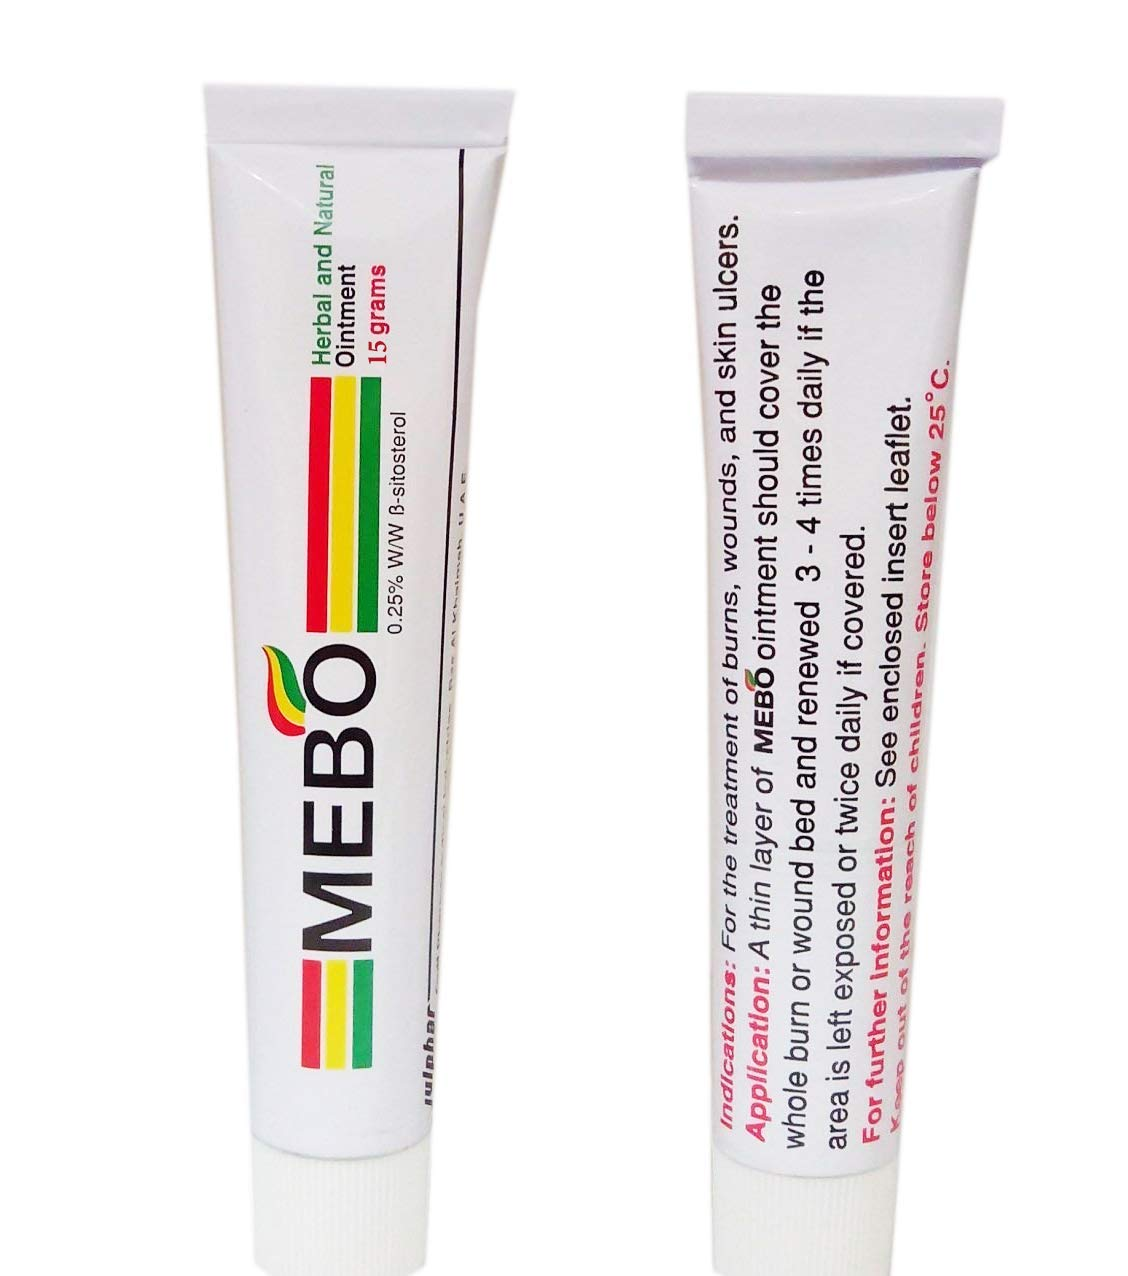 Pack of 5 MEBO Burn Fast Pain Relief Healing Cream Leaves No Marks 15 Grams Each One